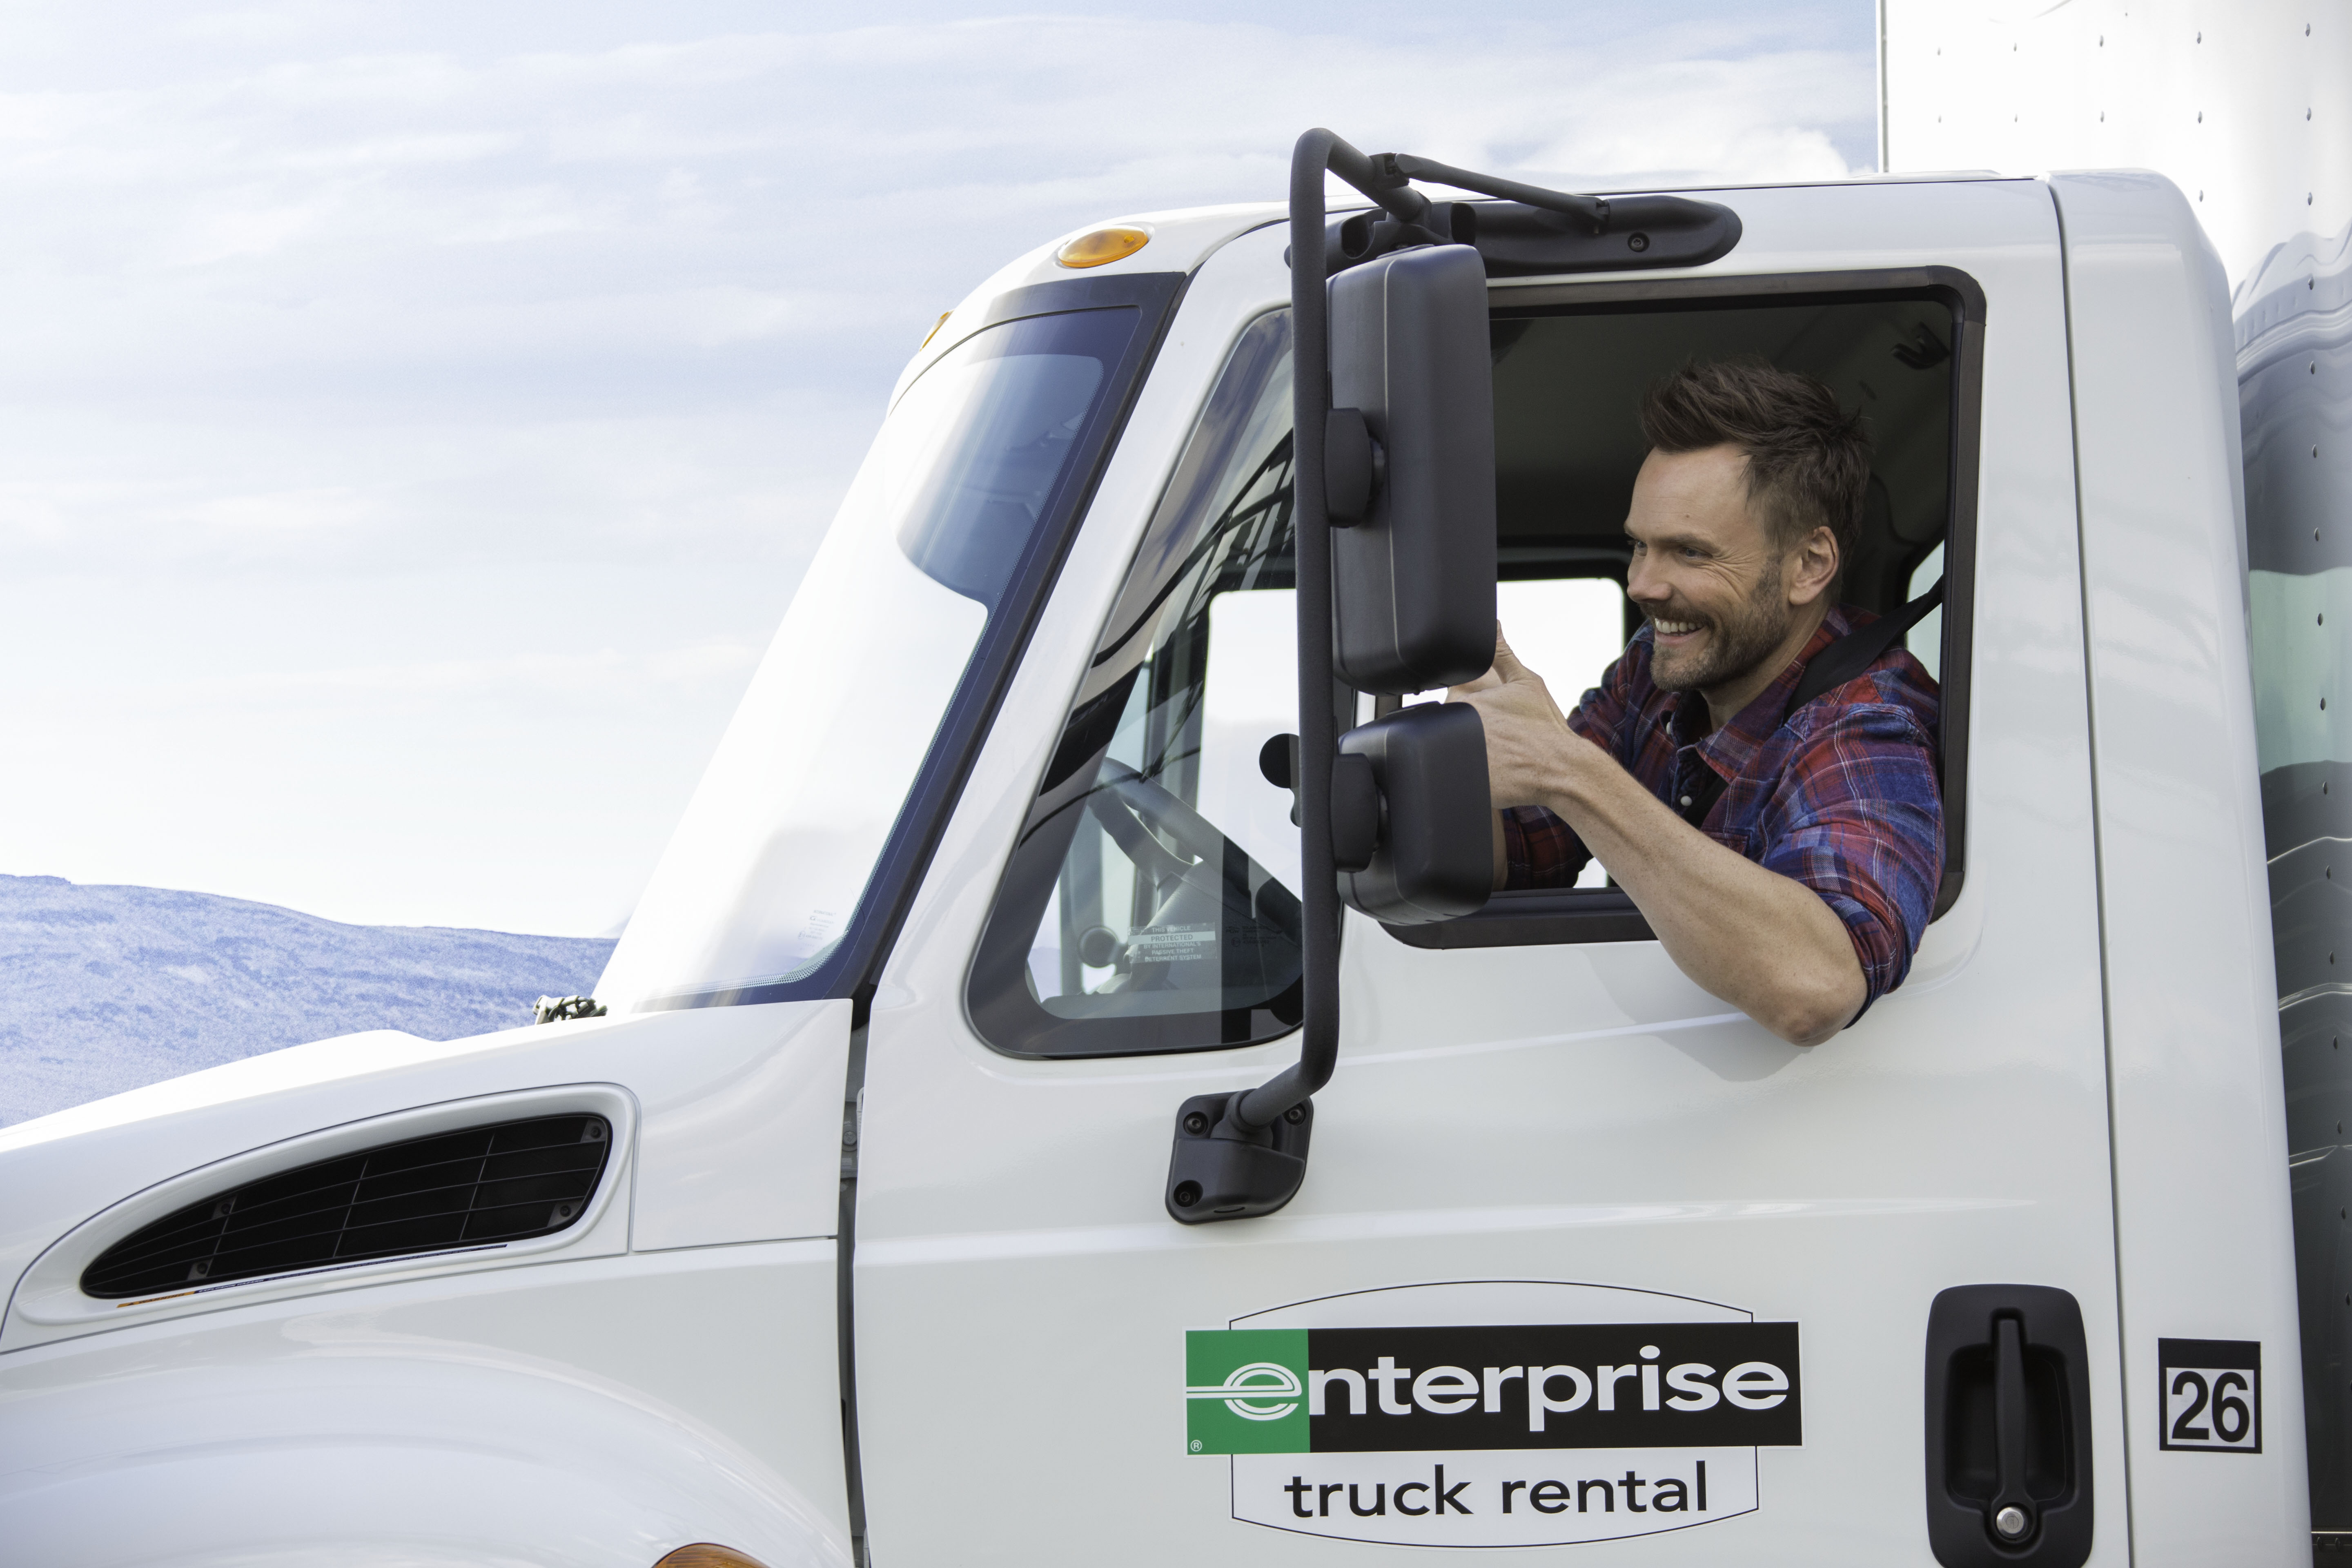 Enterprise Rent-A-Car launches new brand positioning campaign to highlight its comprehensive transportation offerings beyond car rental